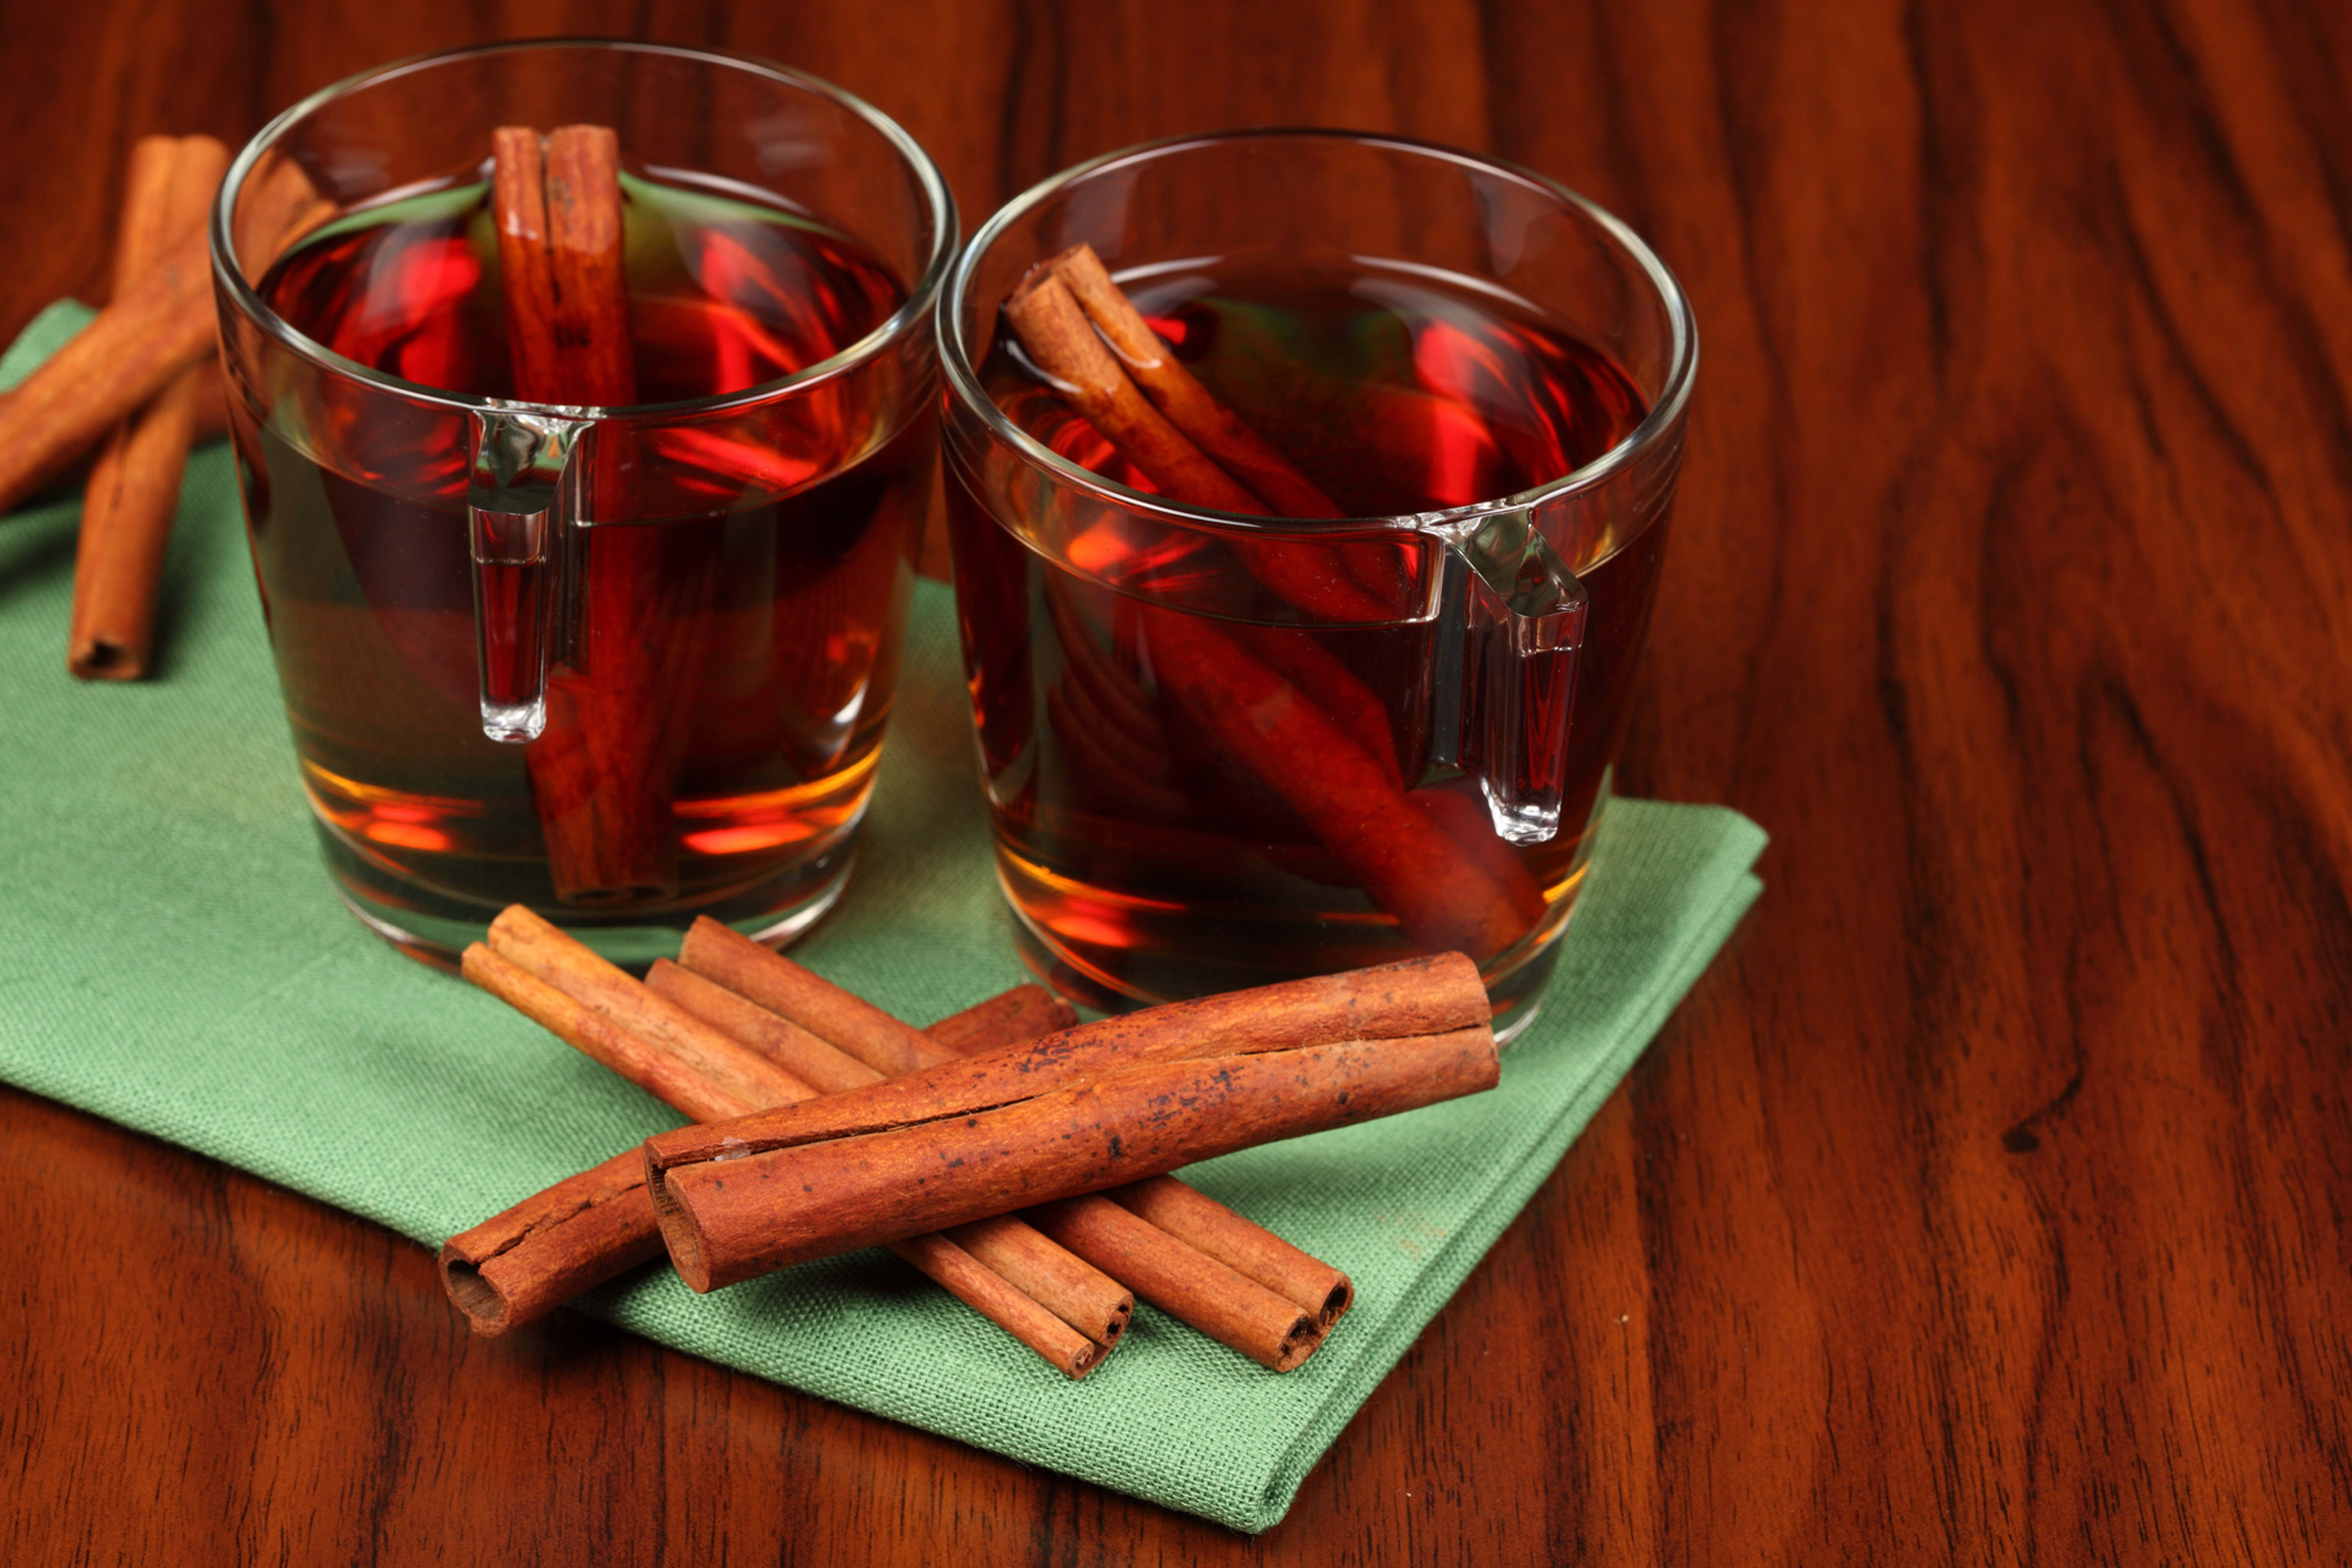 73752 download wallpaper Food, Cups, Cinnamon, Tea, Napkin screensavers and pictures for free